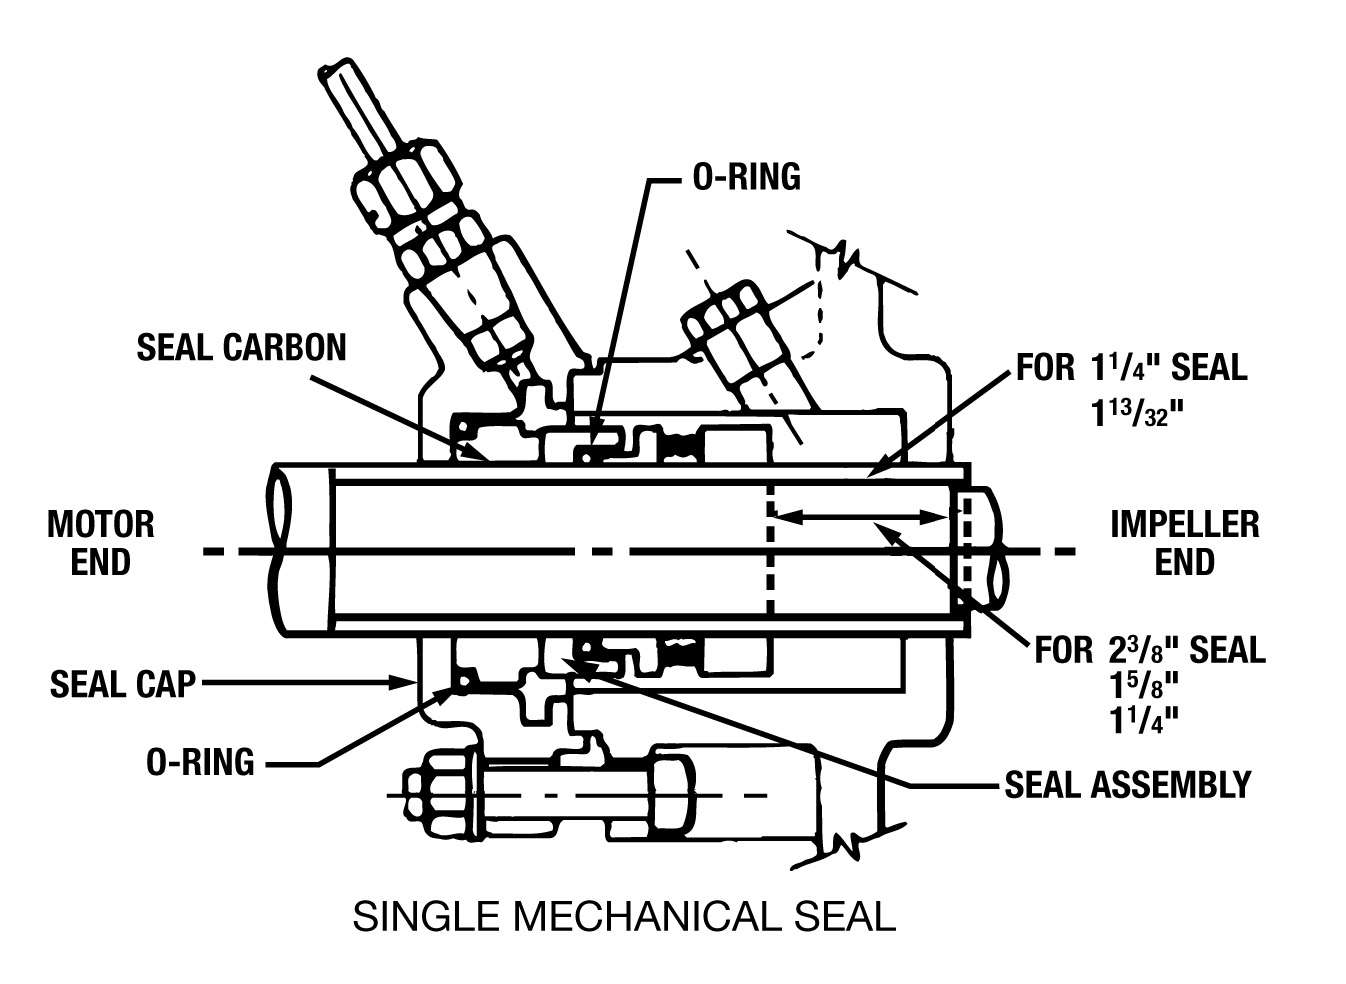 Emerson Pump Motor Wiring Diagram Complete Diagrams 1081 Pool Bell Gossett Series 80 Model 8 X 9 1 2 With 15 Hp 1750 Rpm Single Phase Technologies